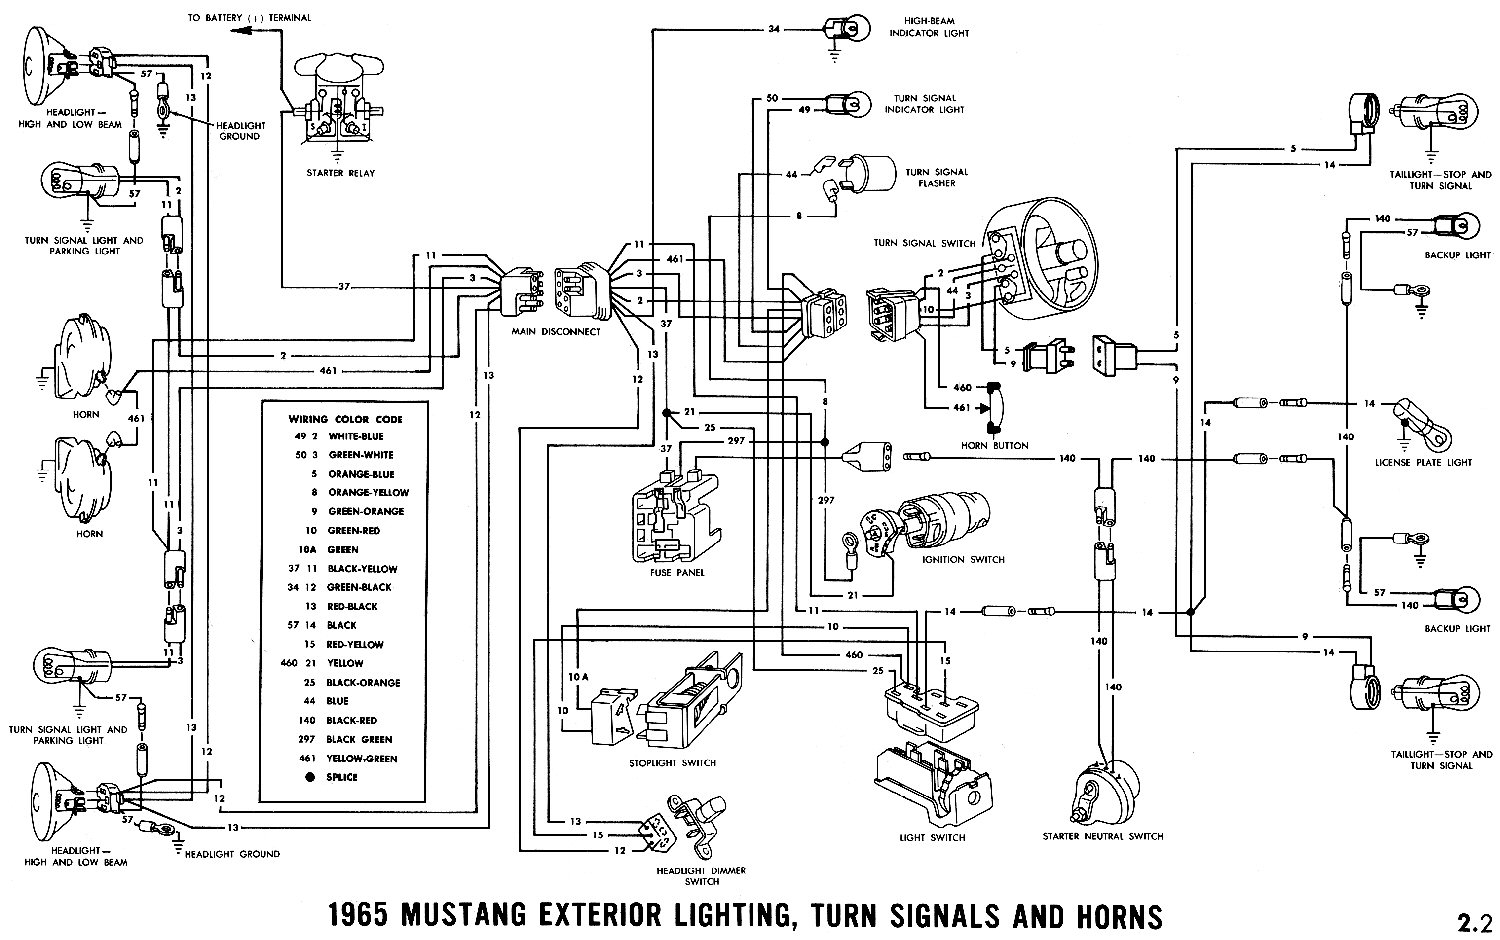 1965 Mustang Ignition Wiring Diagram Collection Wiring